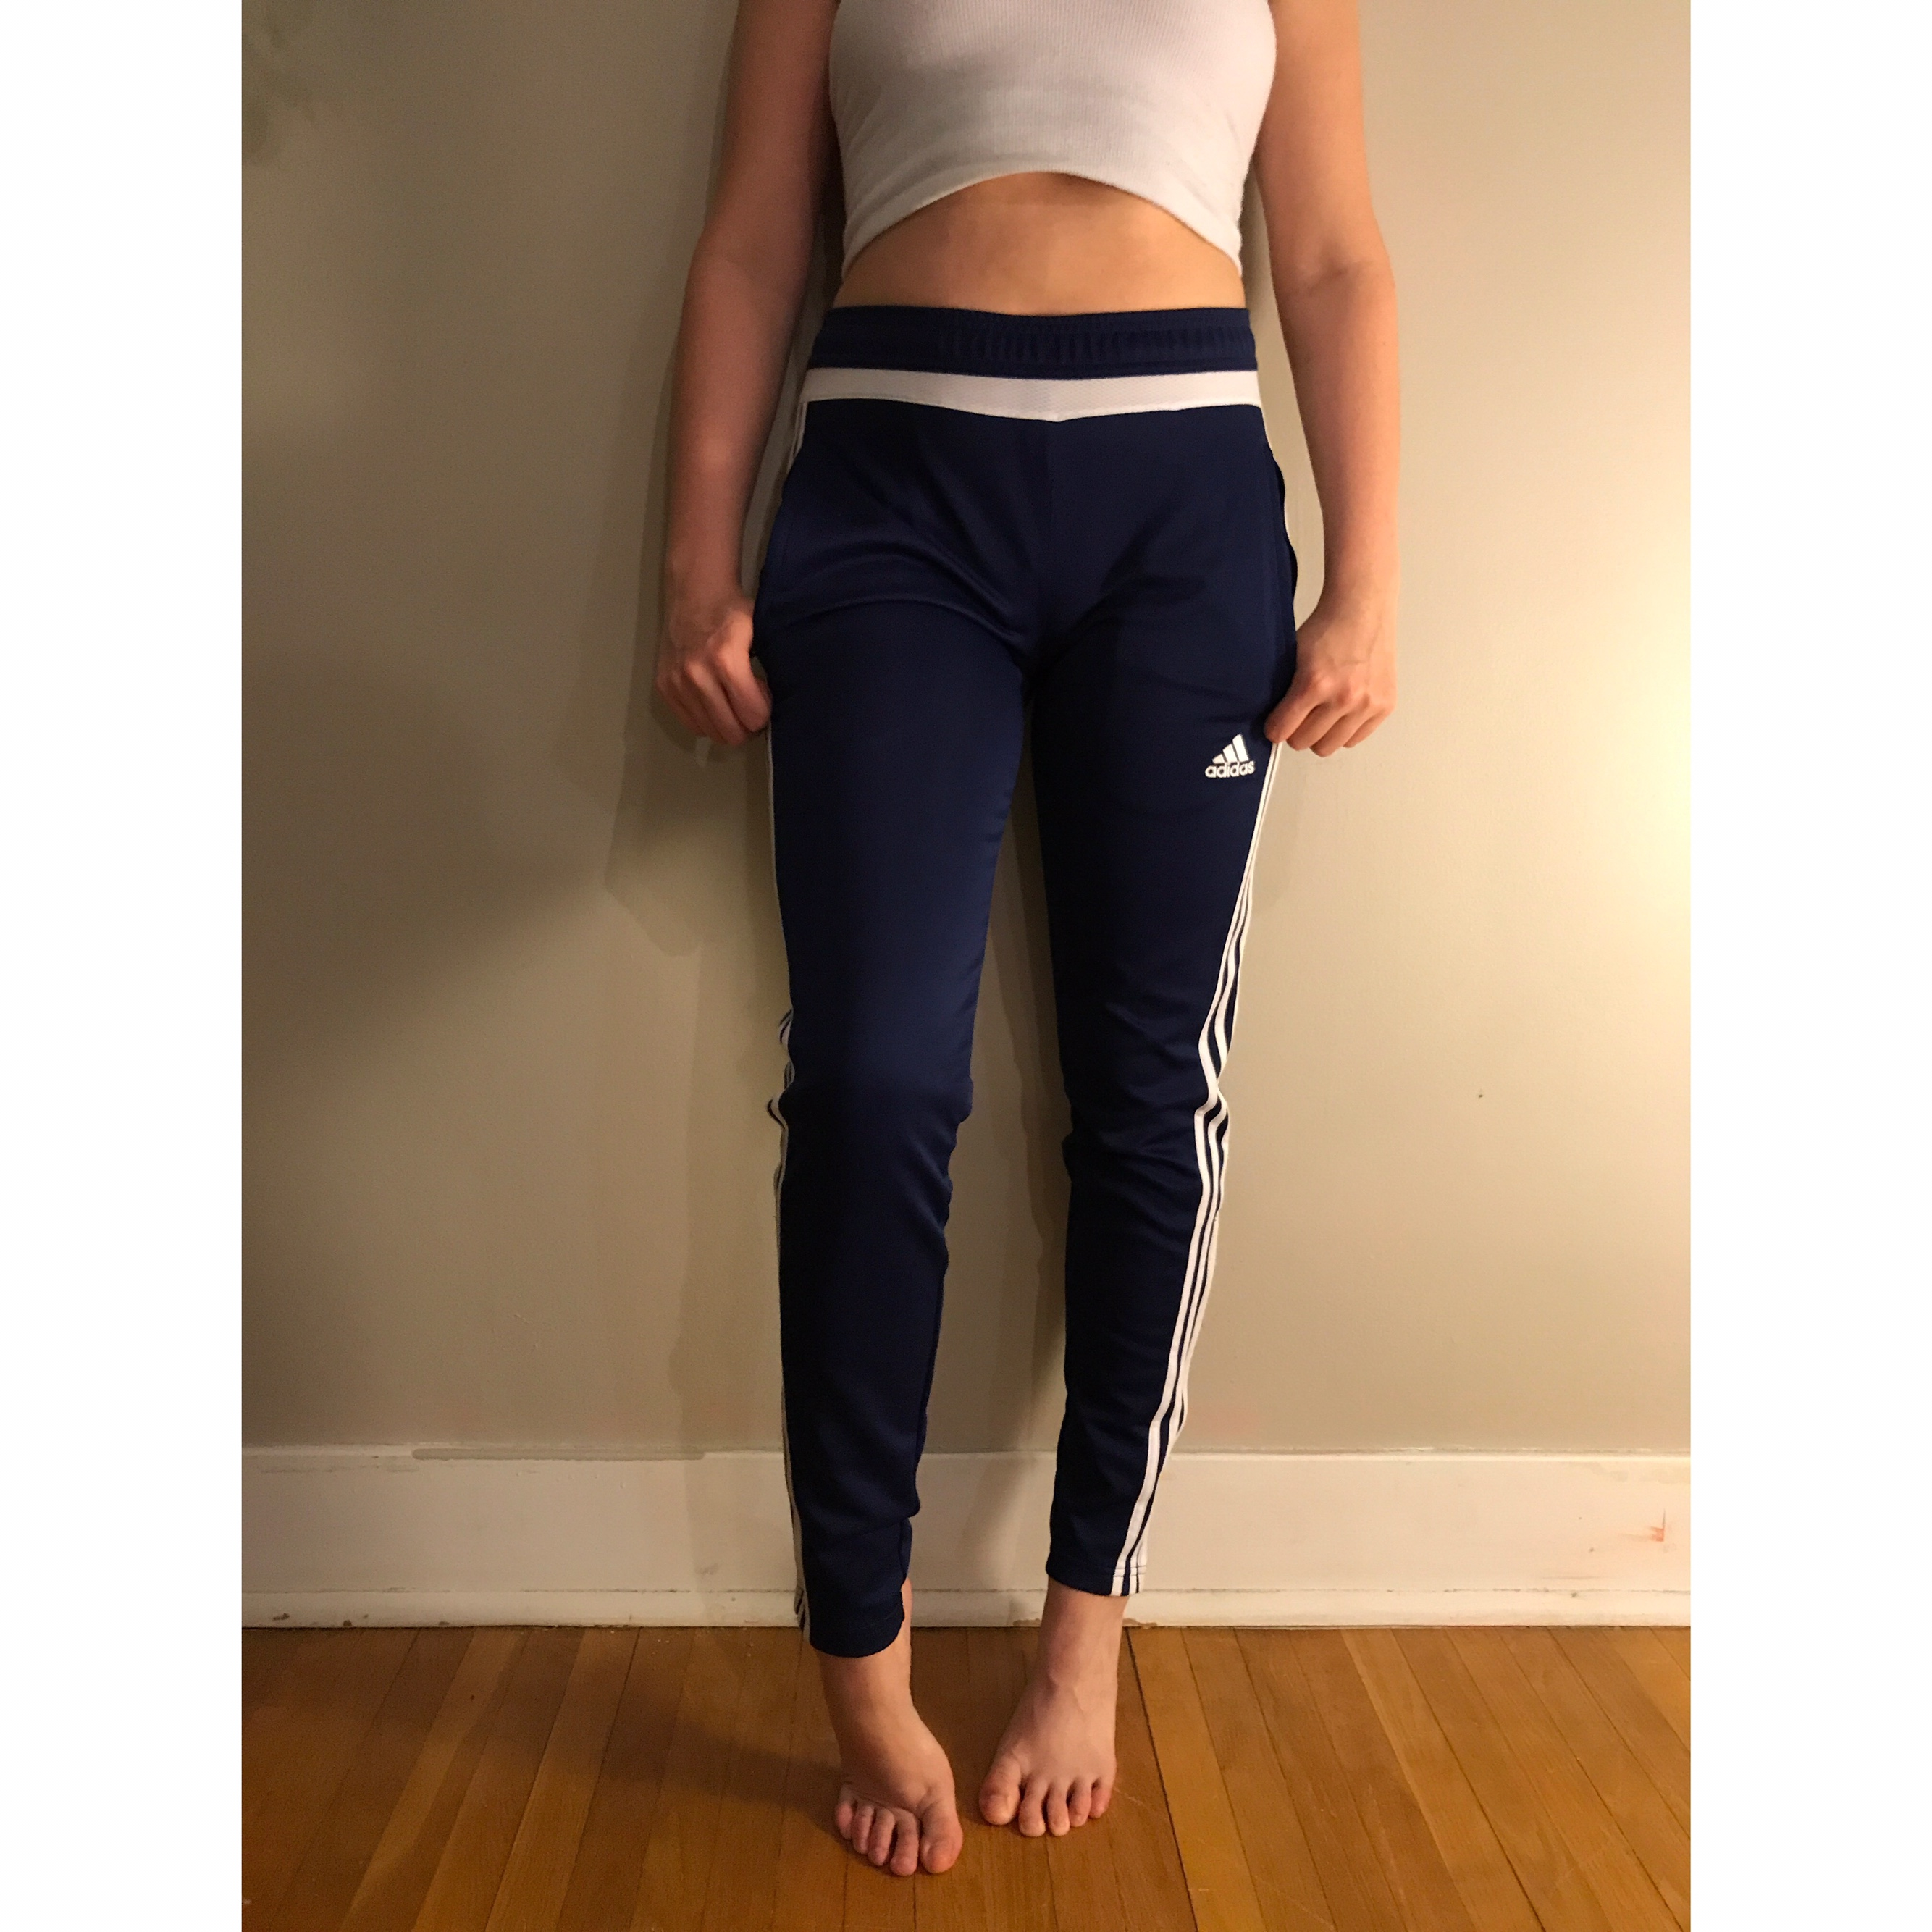 adidas climacool joggers womens